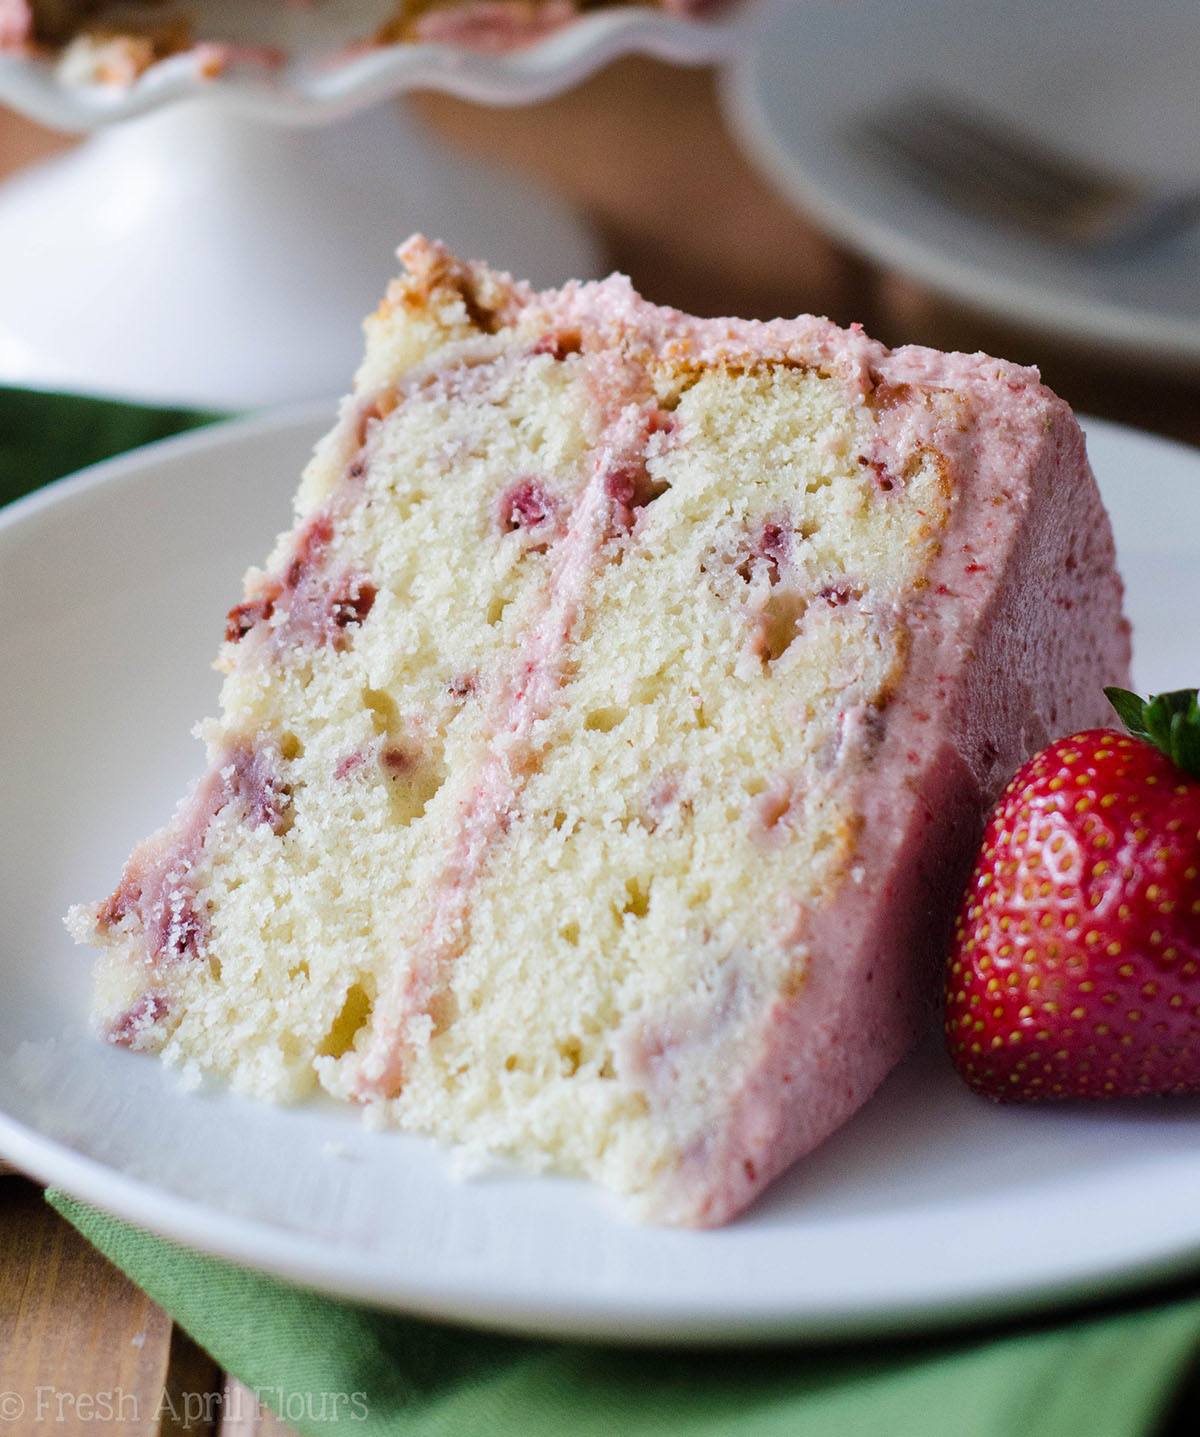 slice of fresh strawberry cake on a plate